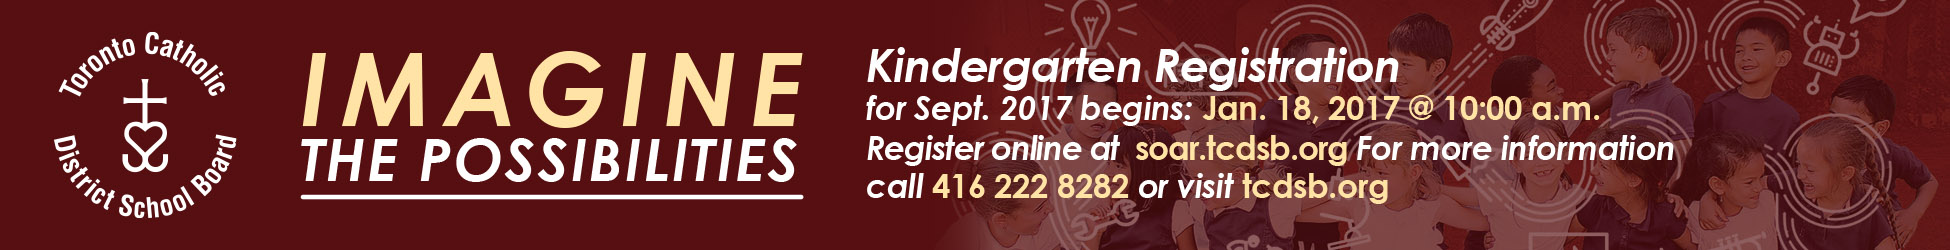 TCDSB - kindergarten (Dec/Jan 2016/17)